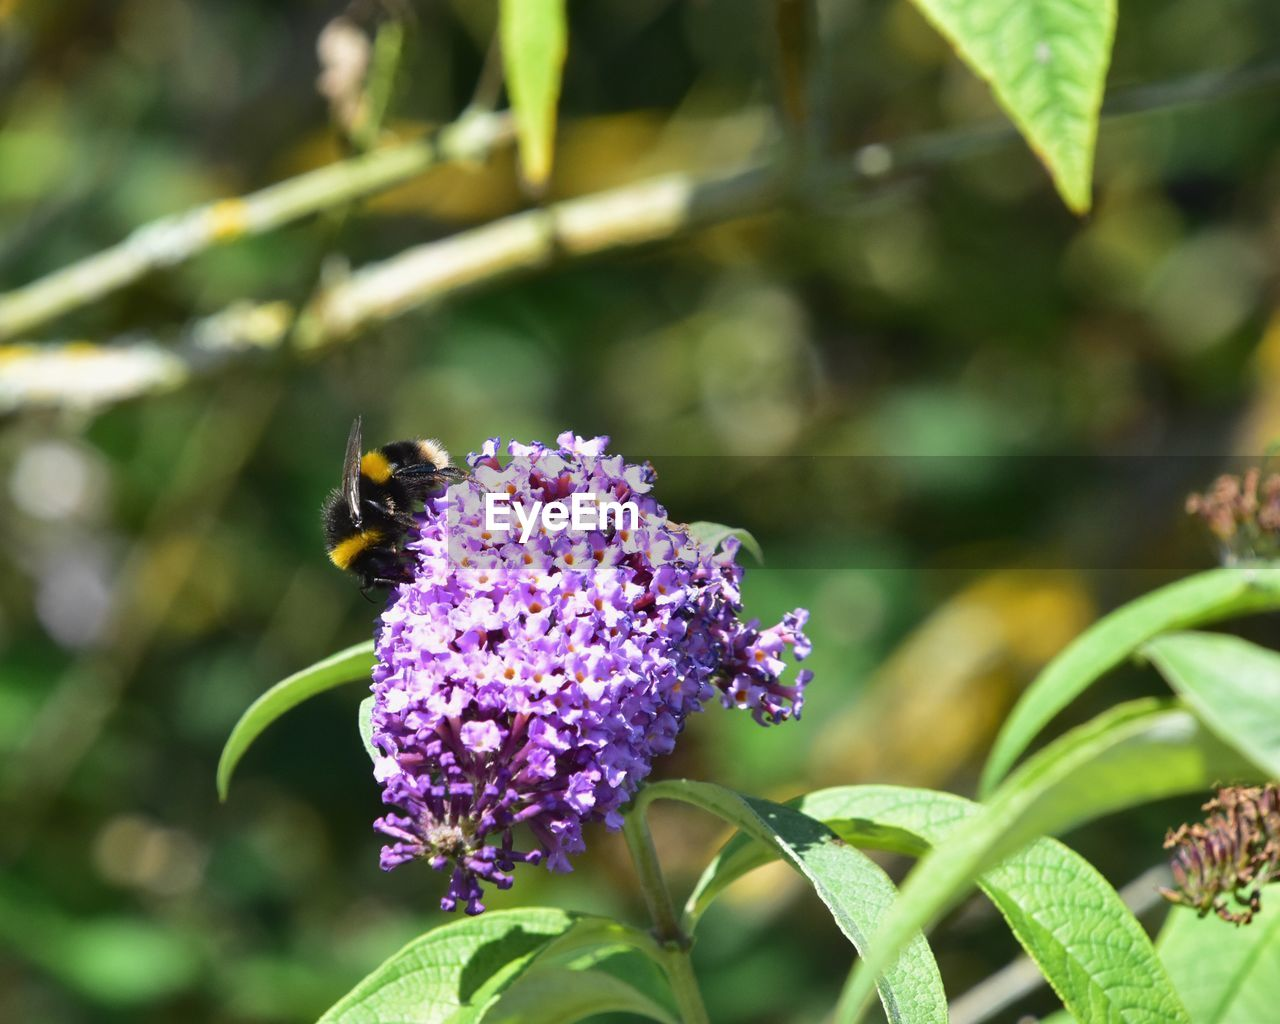 flowering plant, flower, insect, invertebrate, plant, animal themes, animal, beauty in nature, animal wildlife, animals in the wild, one animal, growth, bee, freshness, fragility, vulnerability, flower head, pollination, petal, close-up, purple, no people, bumblebee